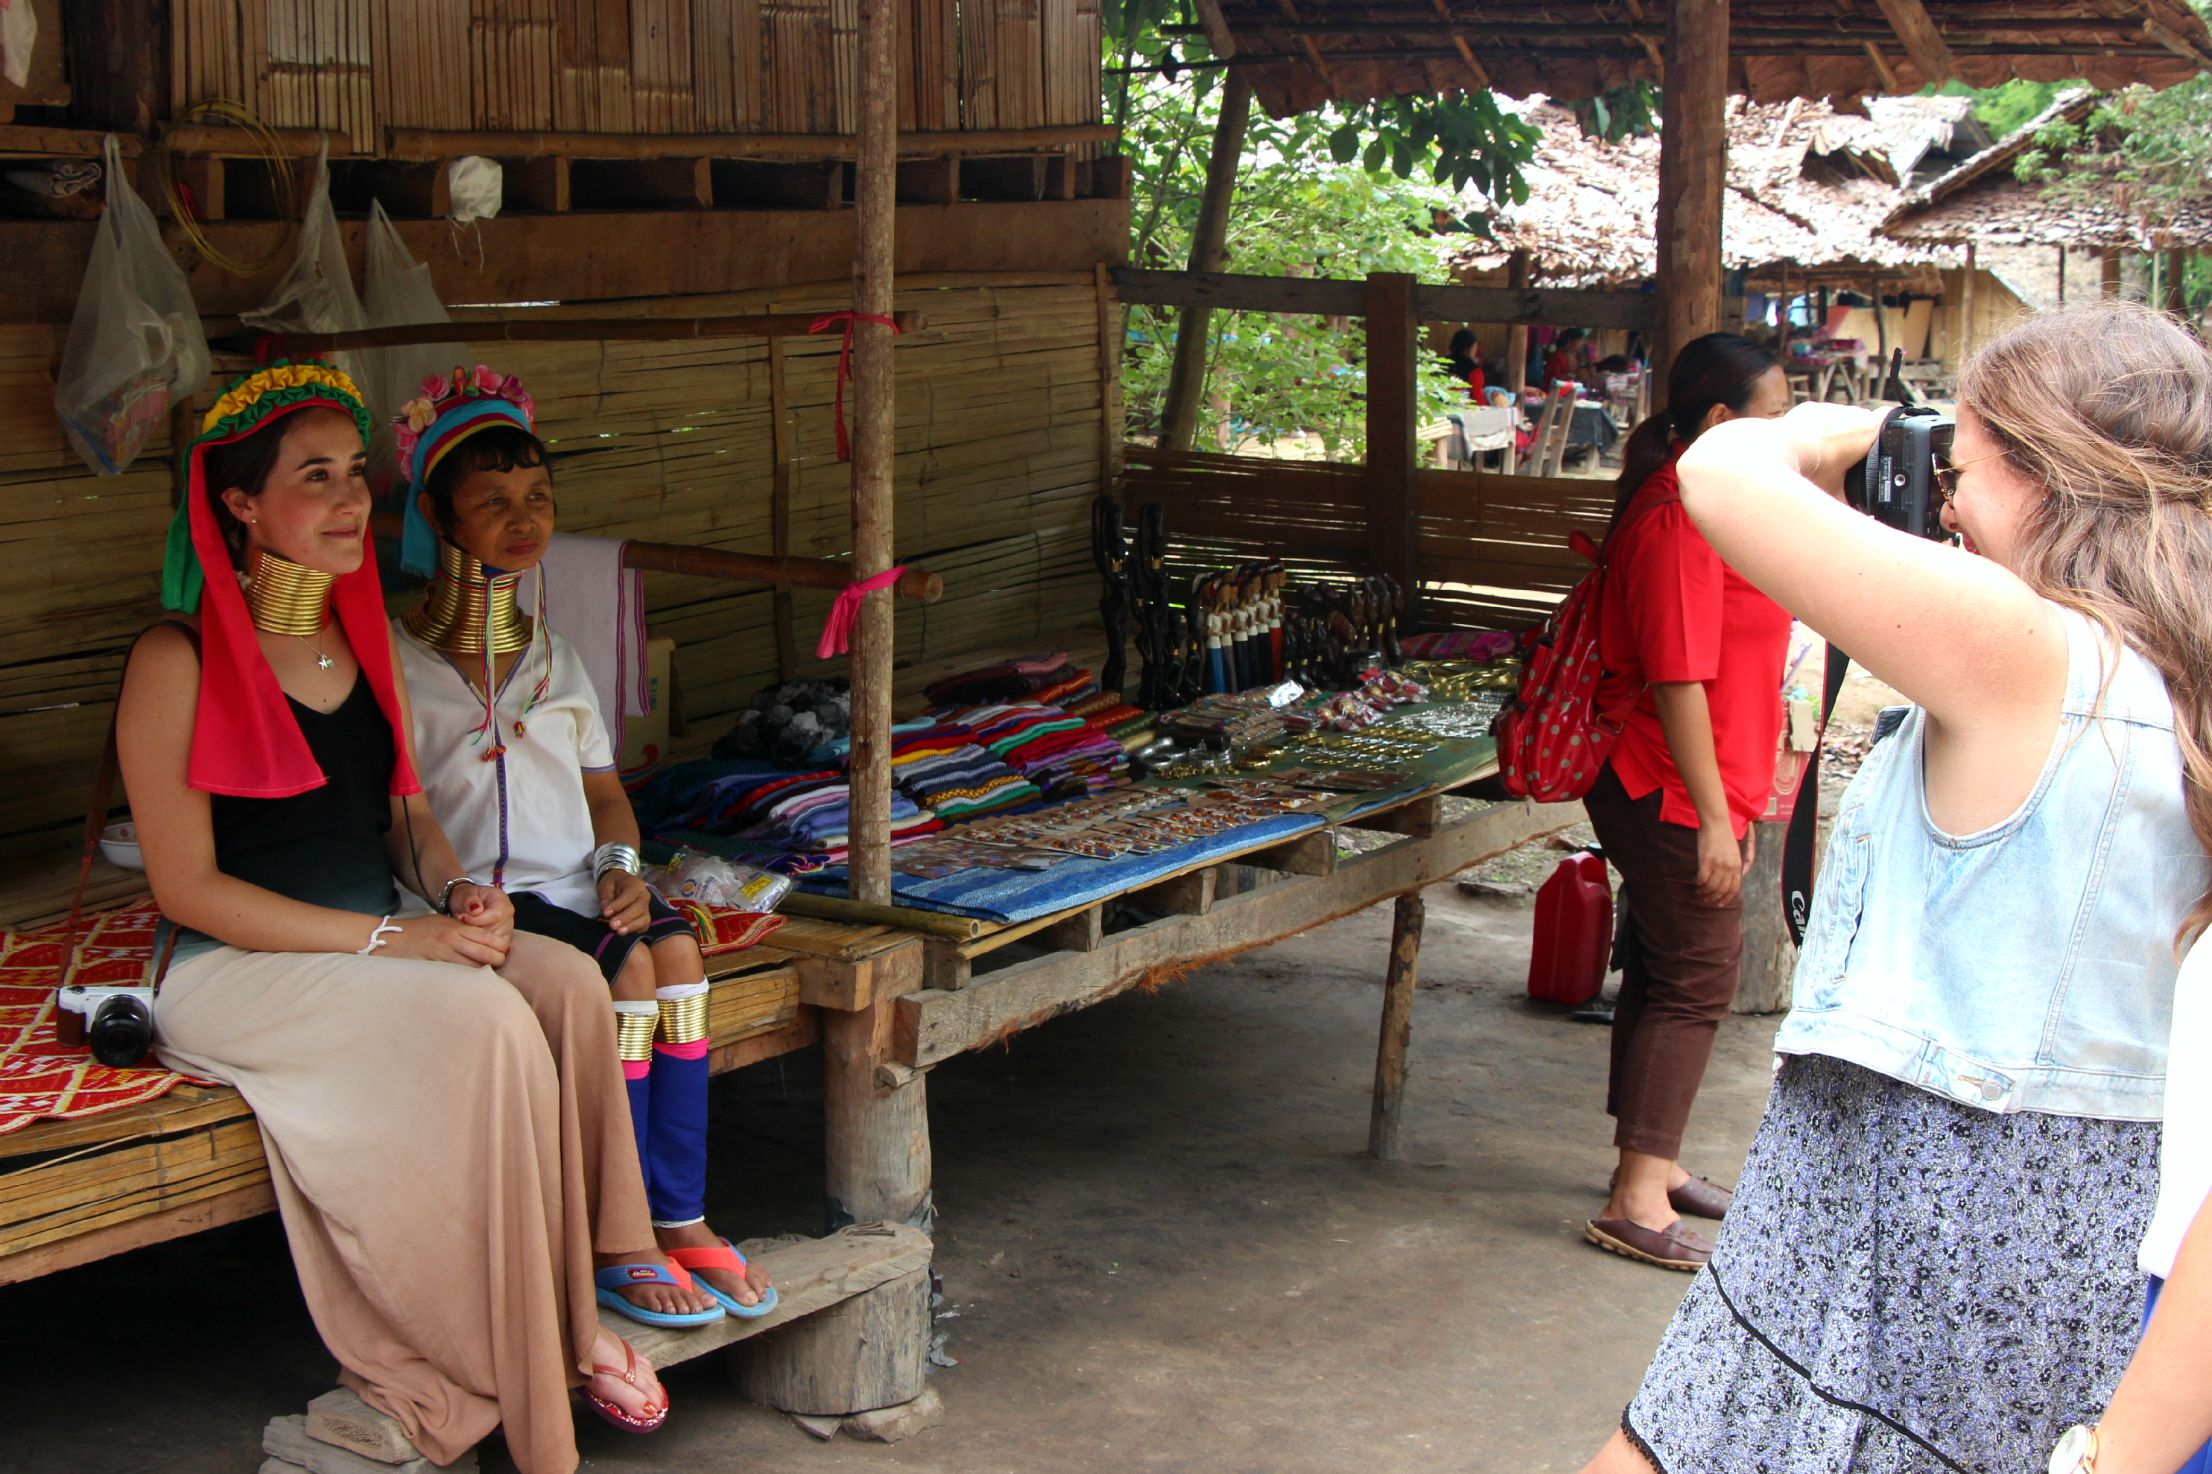 Visitors to the Baan Tong Luang village near Chiang Mai can try on 'tourist rings' and take a picture. (PHOTO: Melanie Keyte).